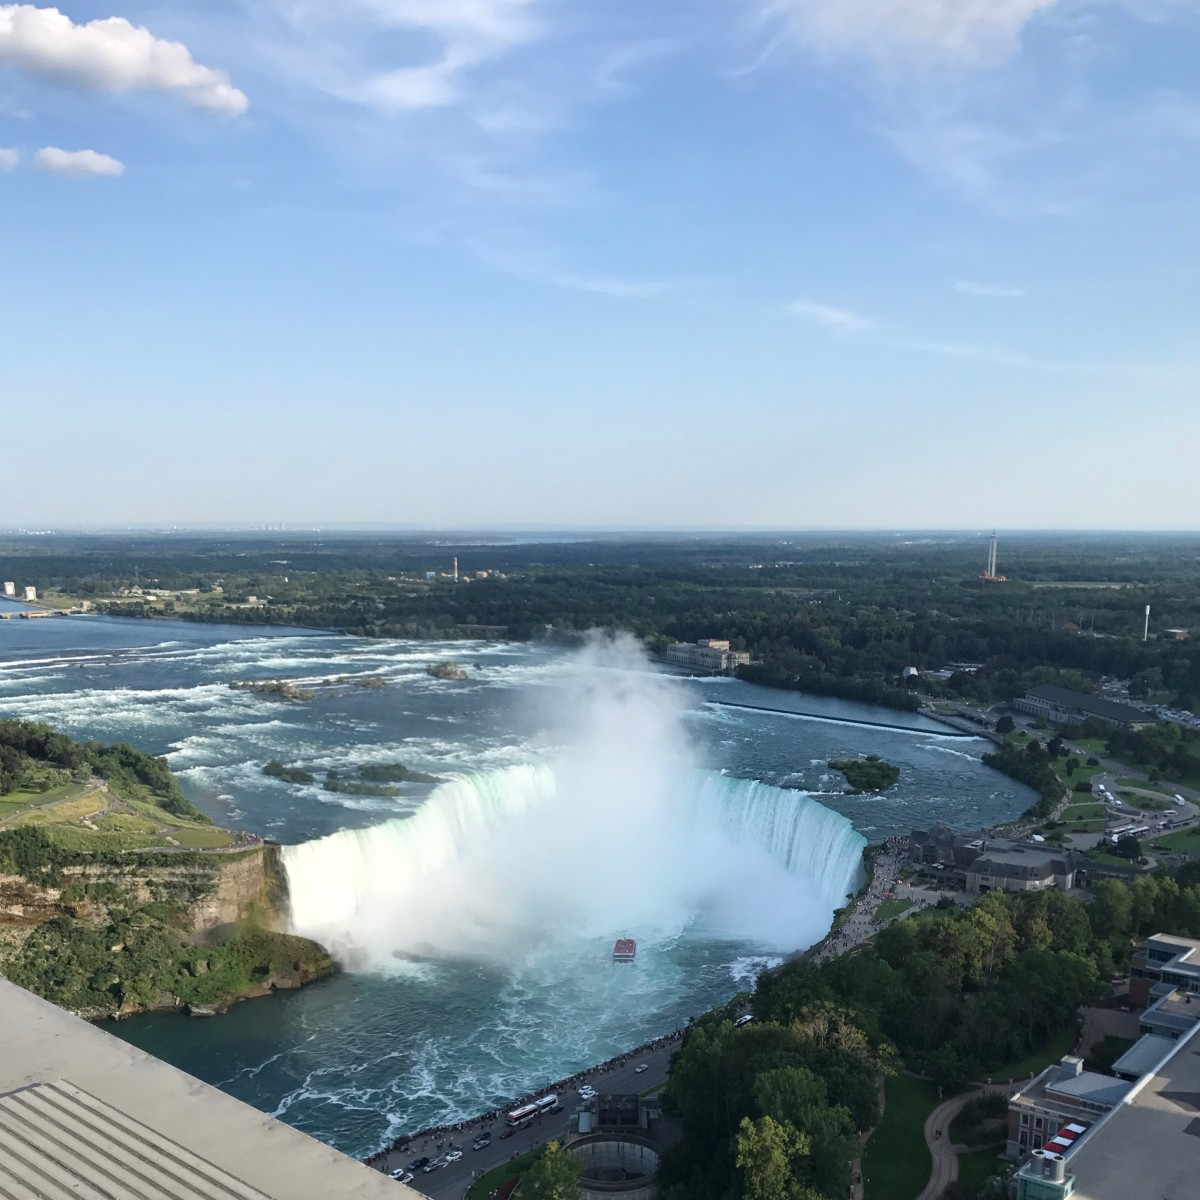 A view of Horseshoe Falls from the Skylon Tower.